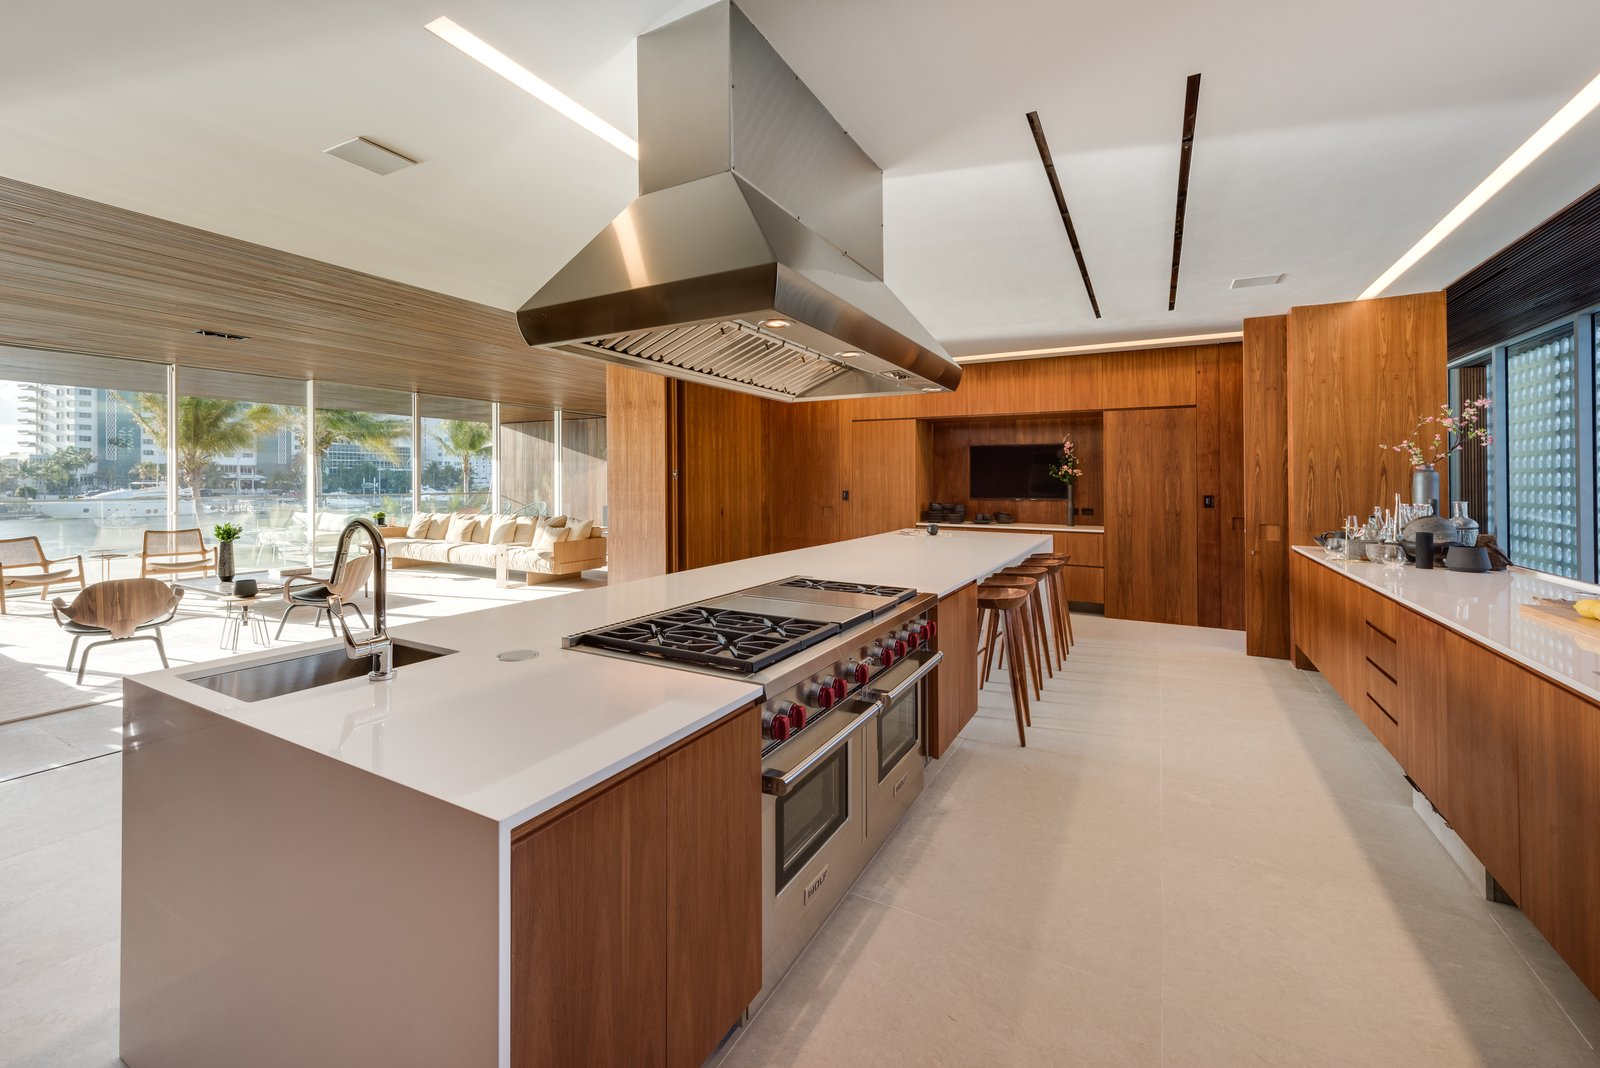 Trees, Gardens, Concrete, Shrubs, Chair, Sofa, Recessed, Limestone, and Kitchen Spacious and bright, the kitchen features a large island with seating and opens up to the living area.  Best Kitchen Recessed Gardens Photos from Pine Tree North